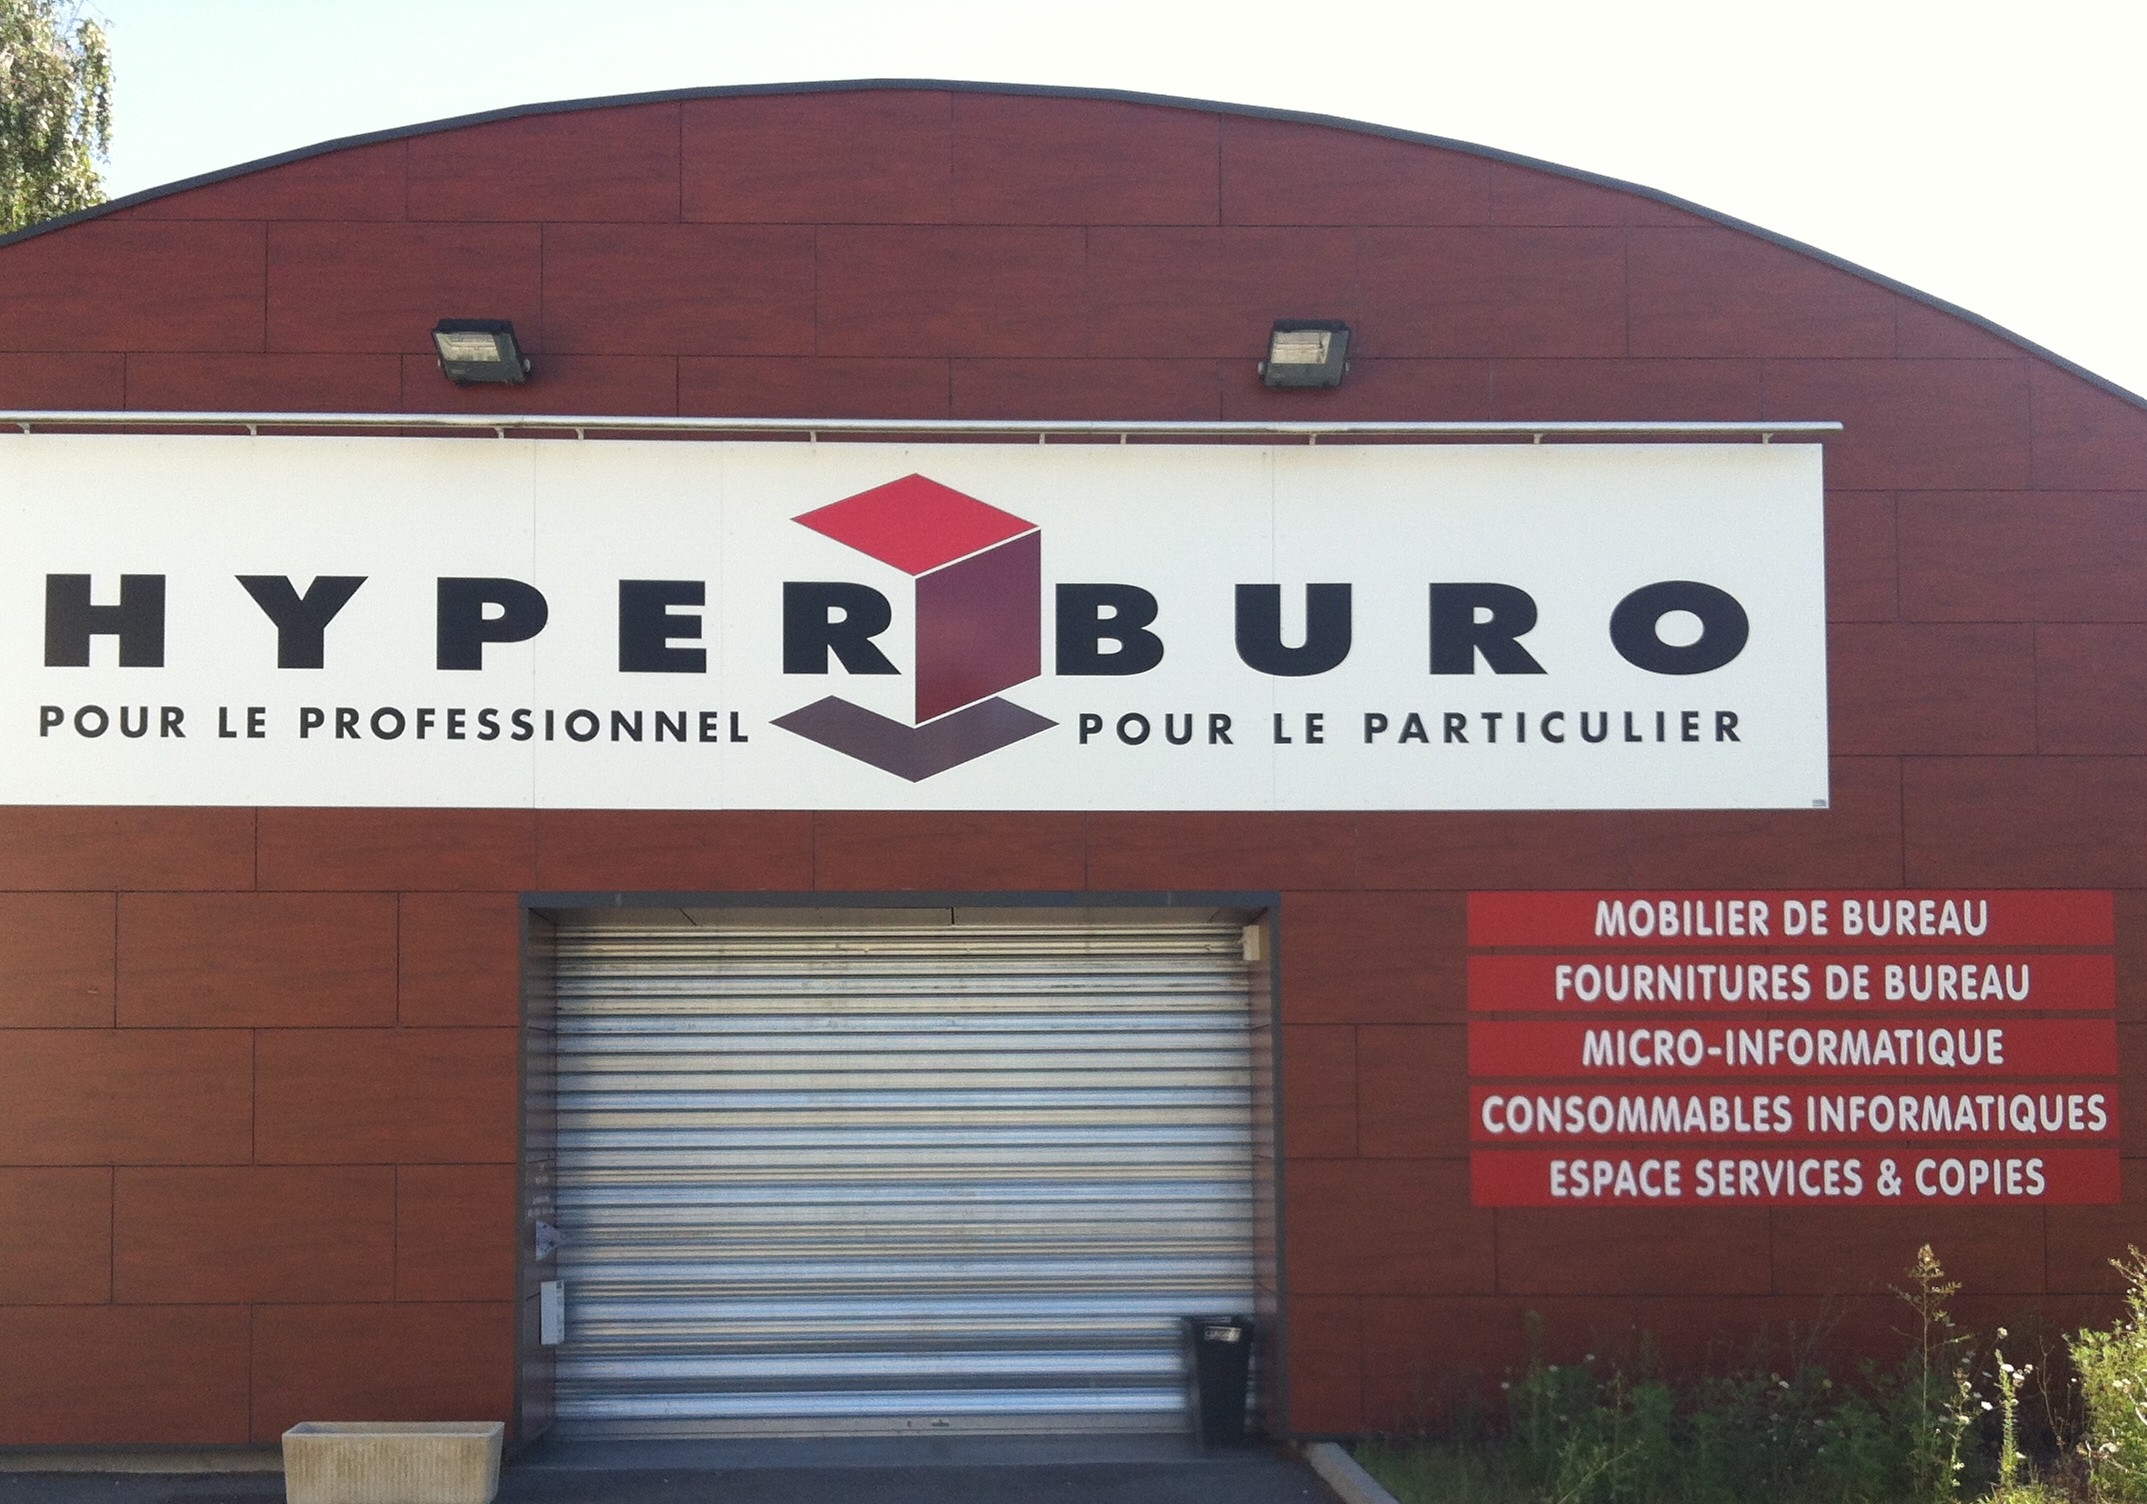 Services et copies